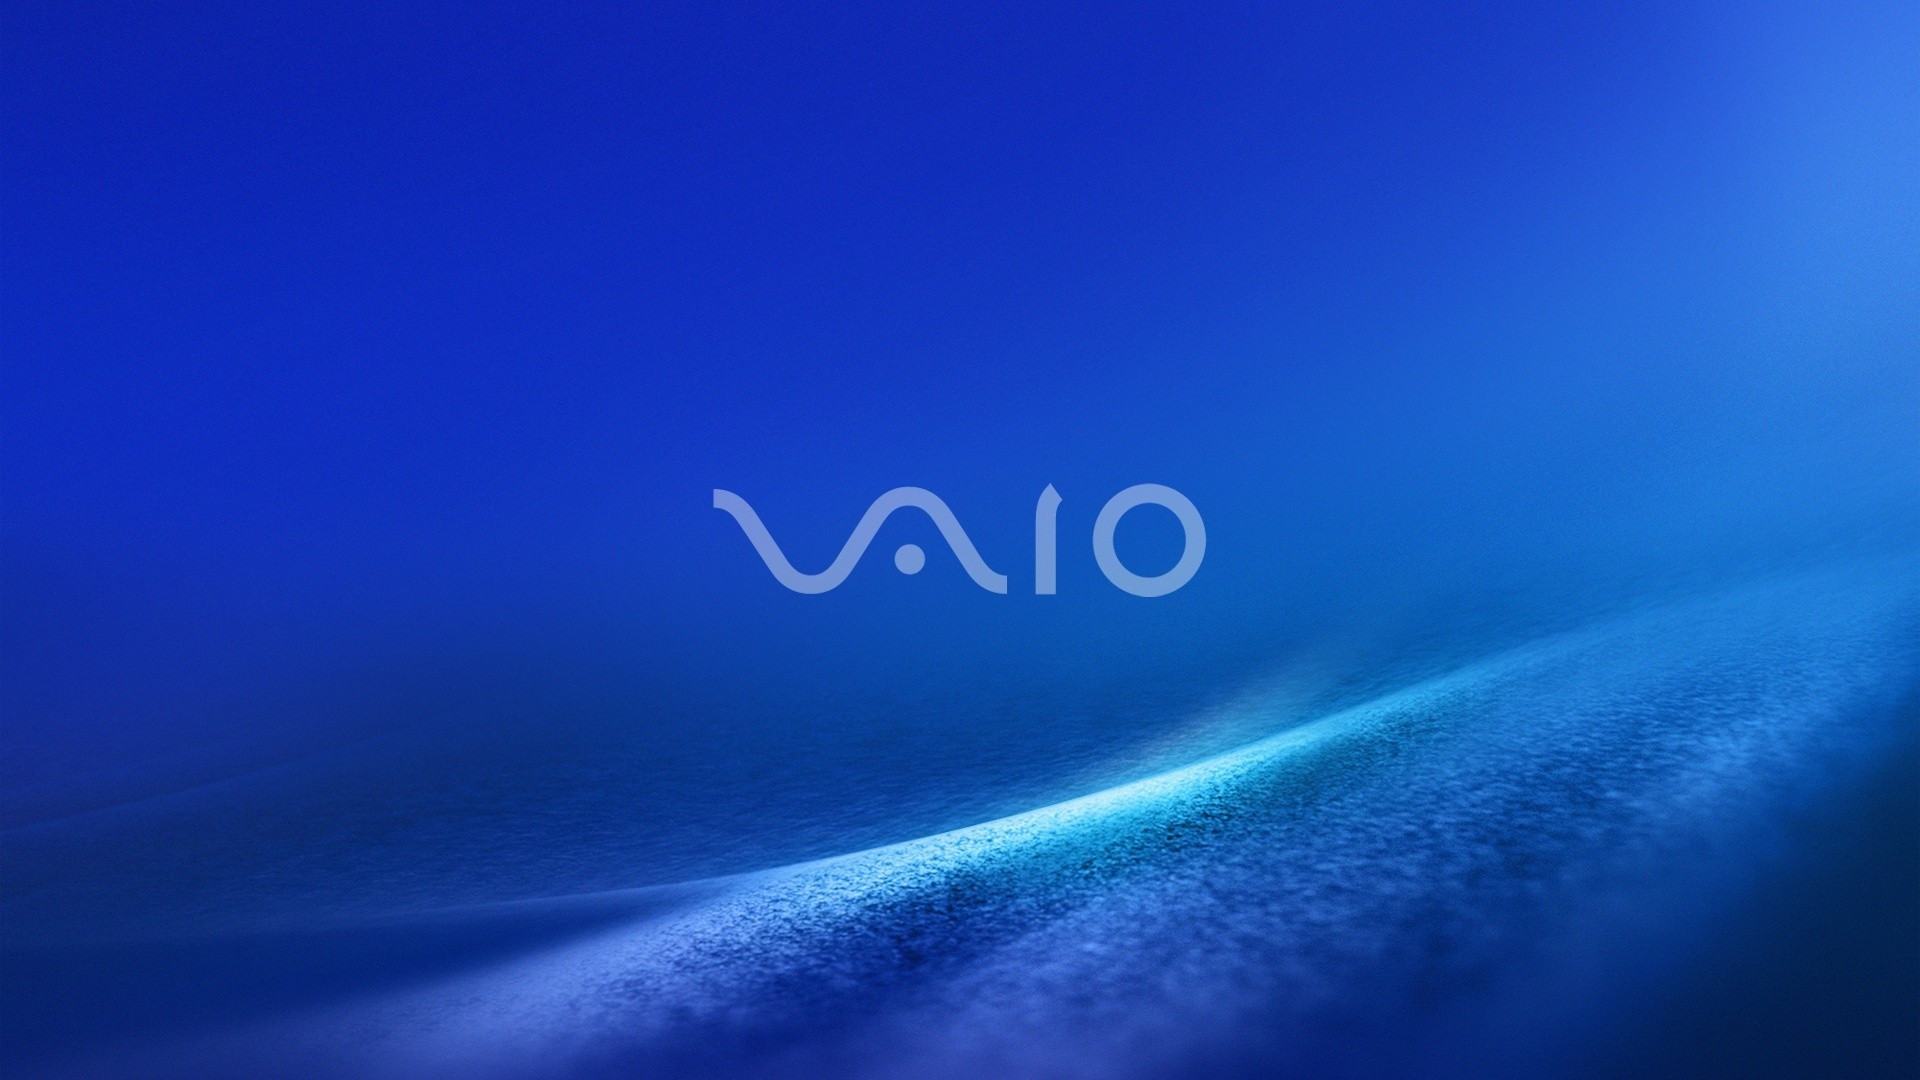 Vaio Wall Paper Black: VAIO Wallpaper 1920x1080